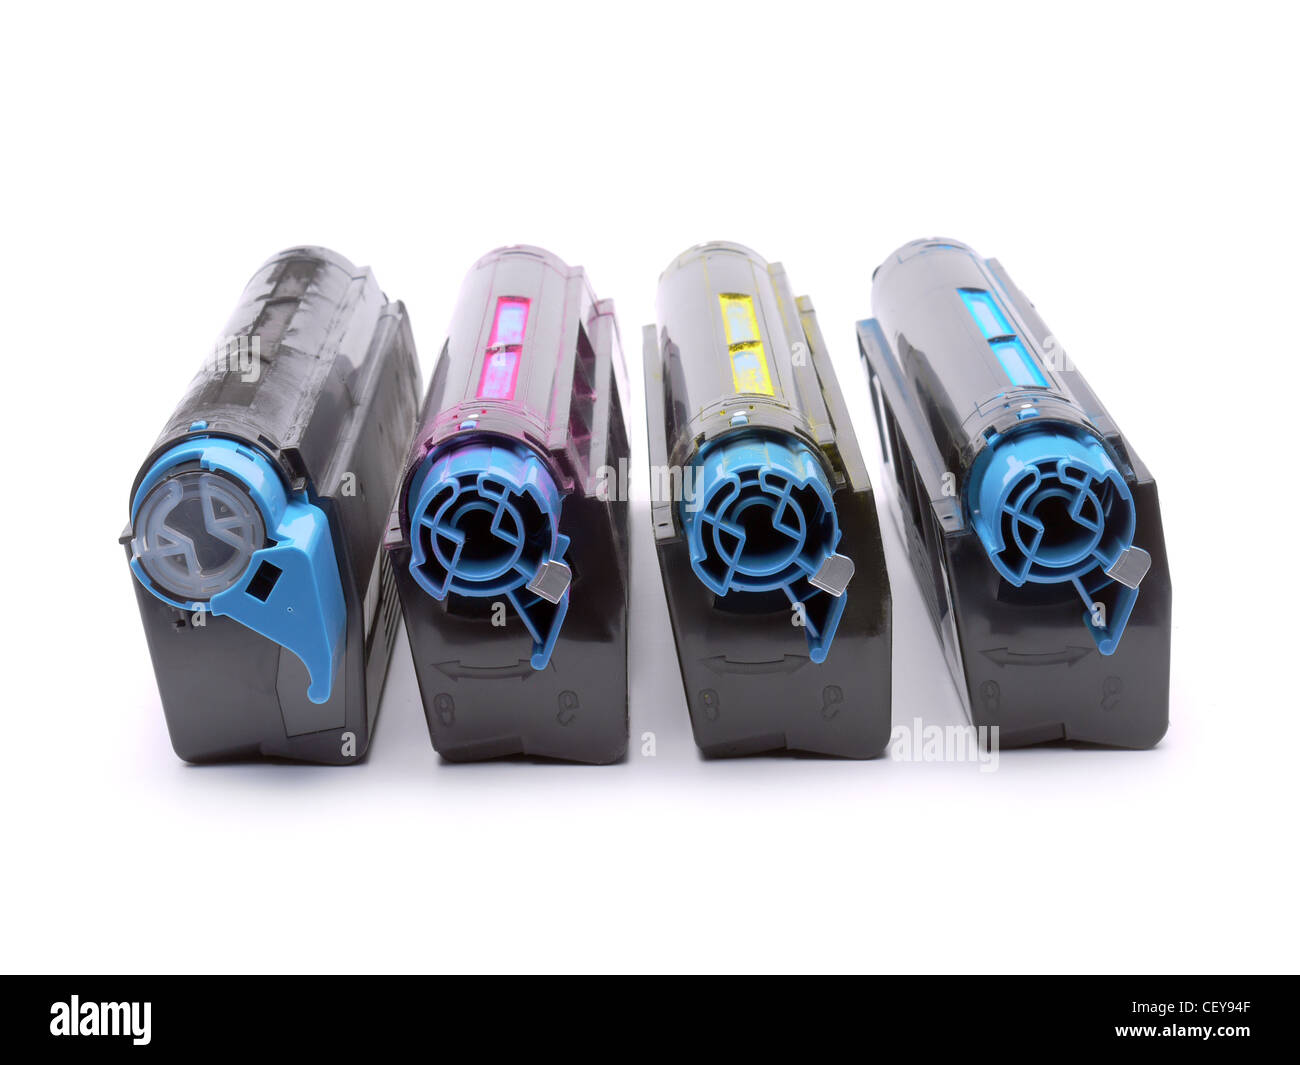 Four used laser printer toner cartridges of Cyan, Magenta, Yellow and black color shot over white background - Stock Image